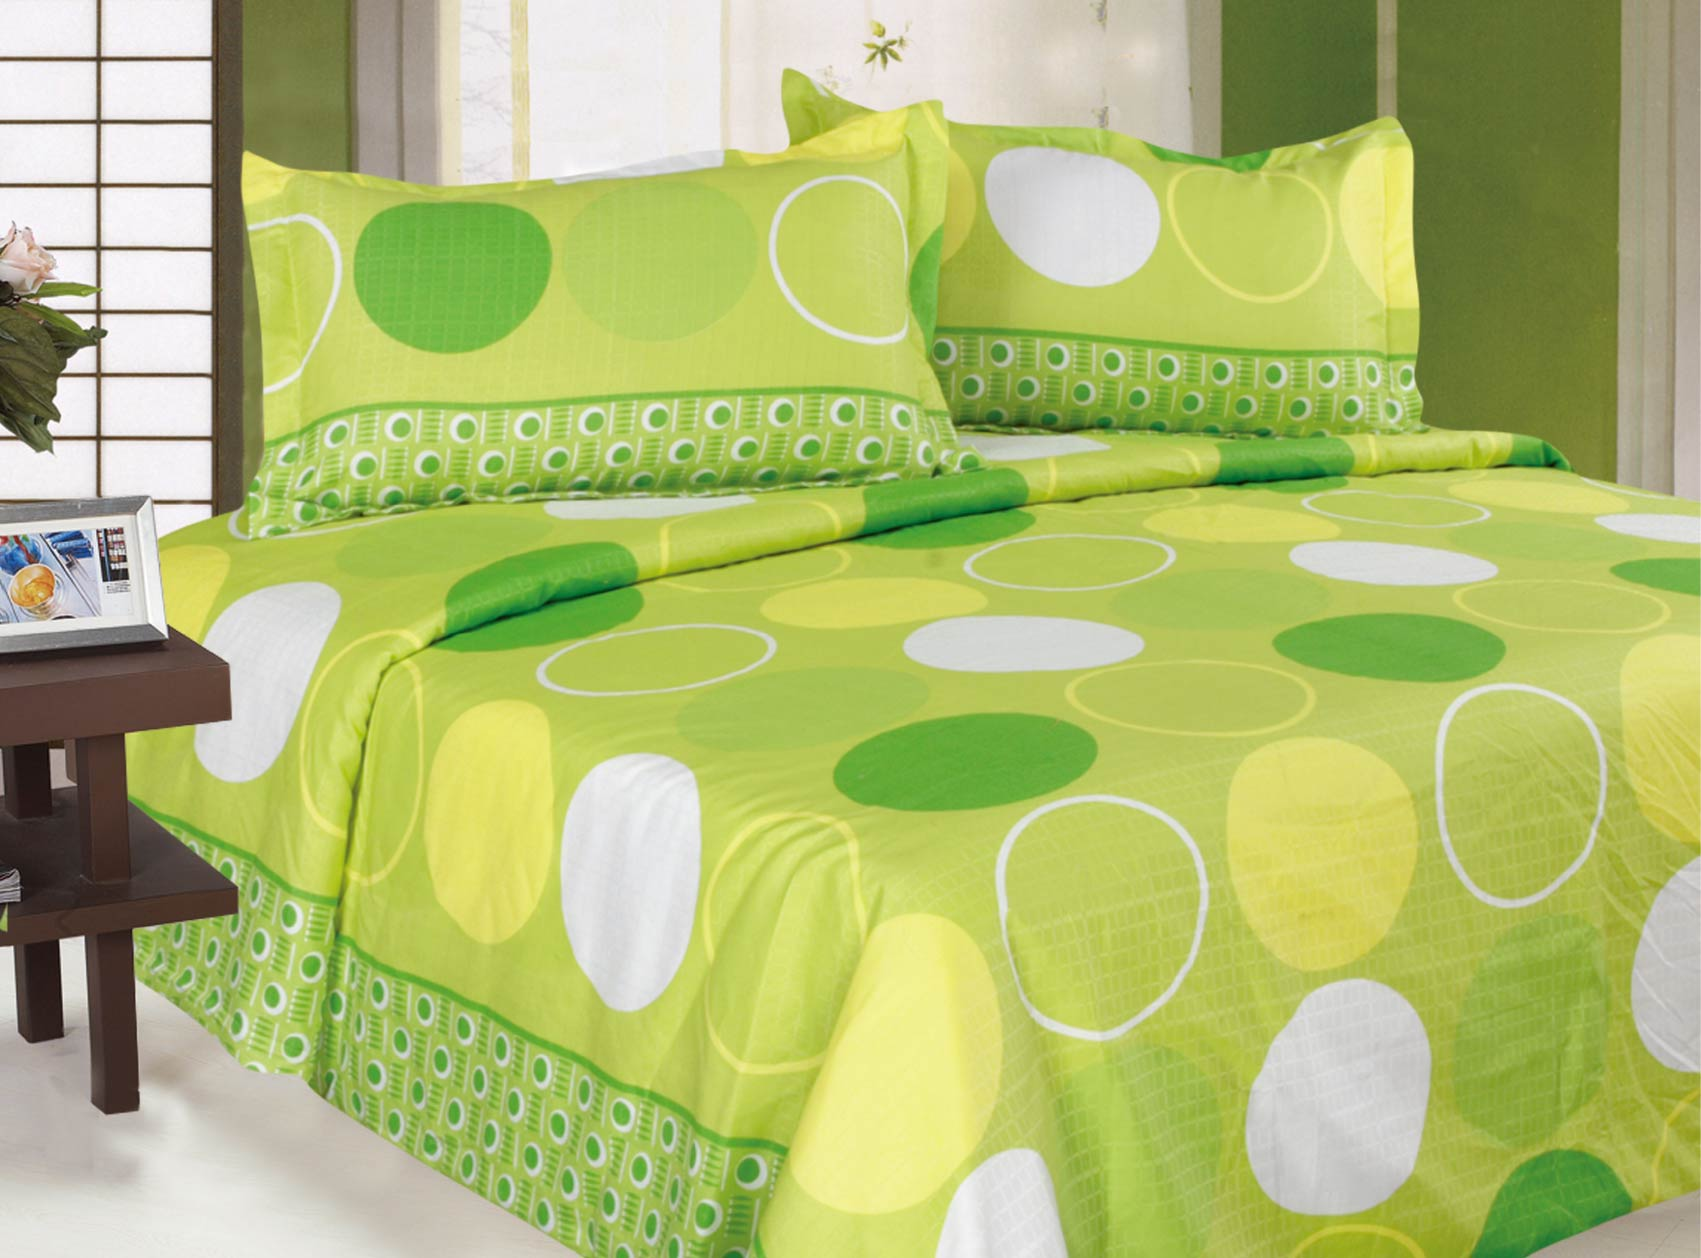 Bed sheets product